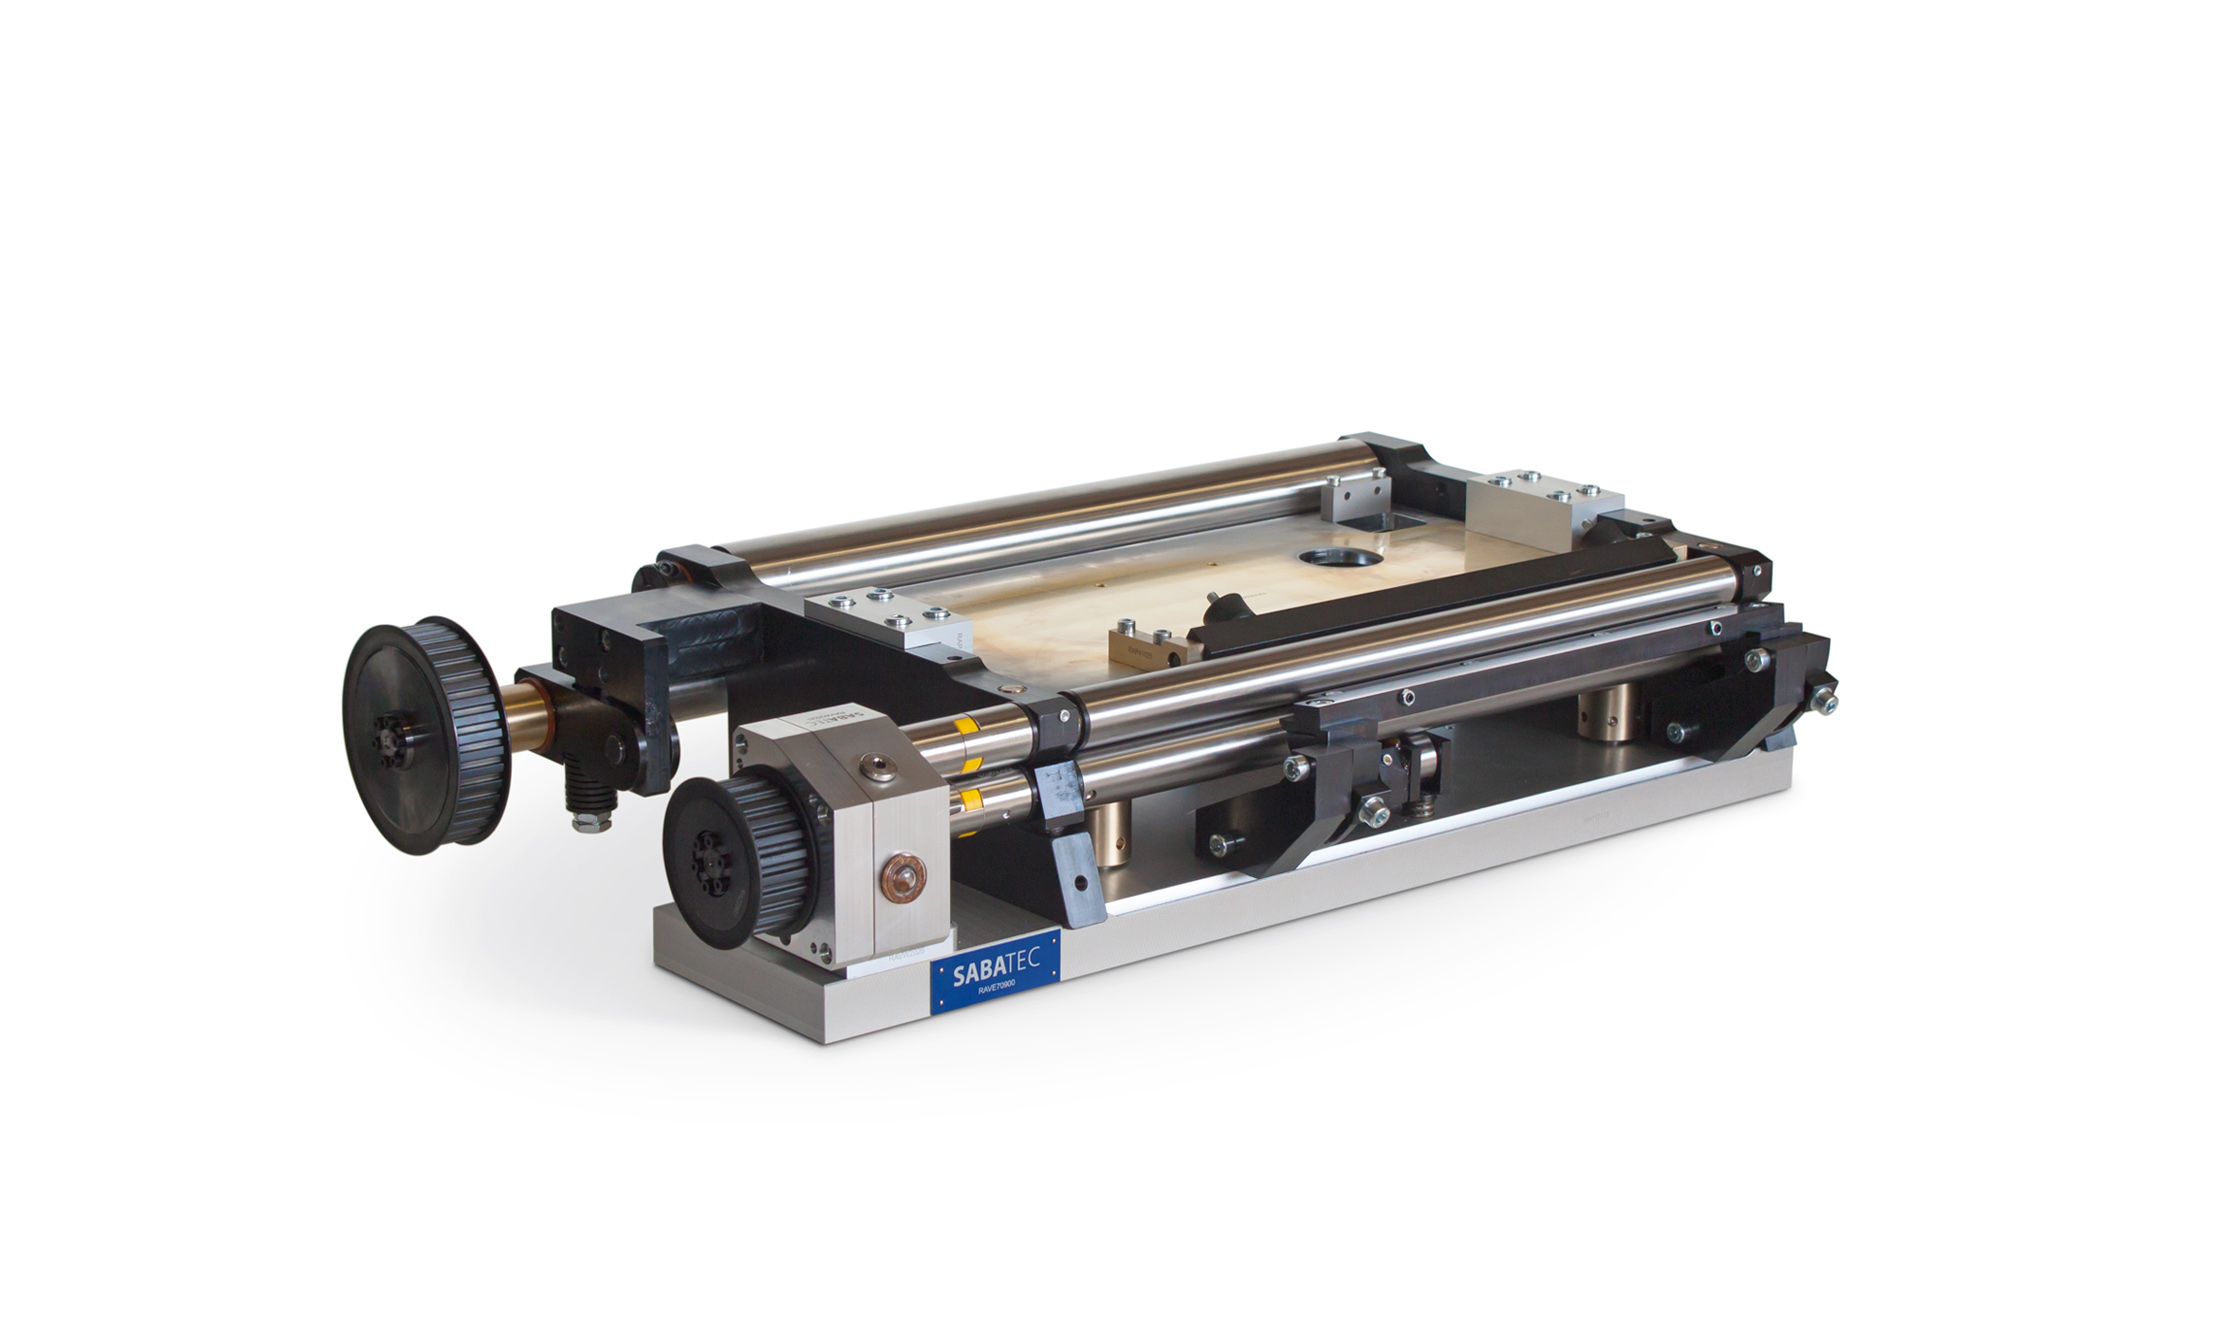 Sabatec GmbH _ Rollforming Unit for VEAW-K - RAVE70900